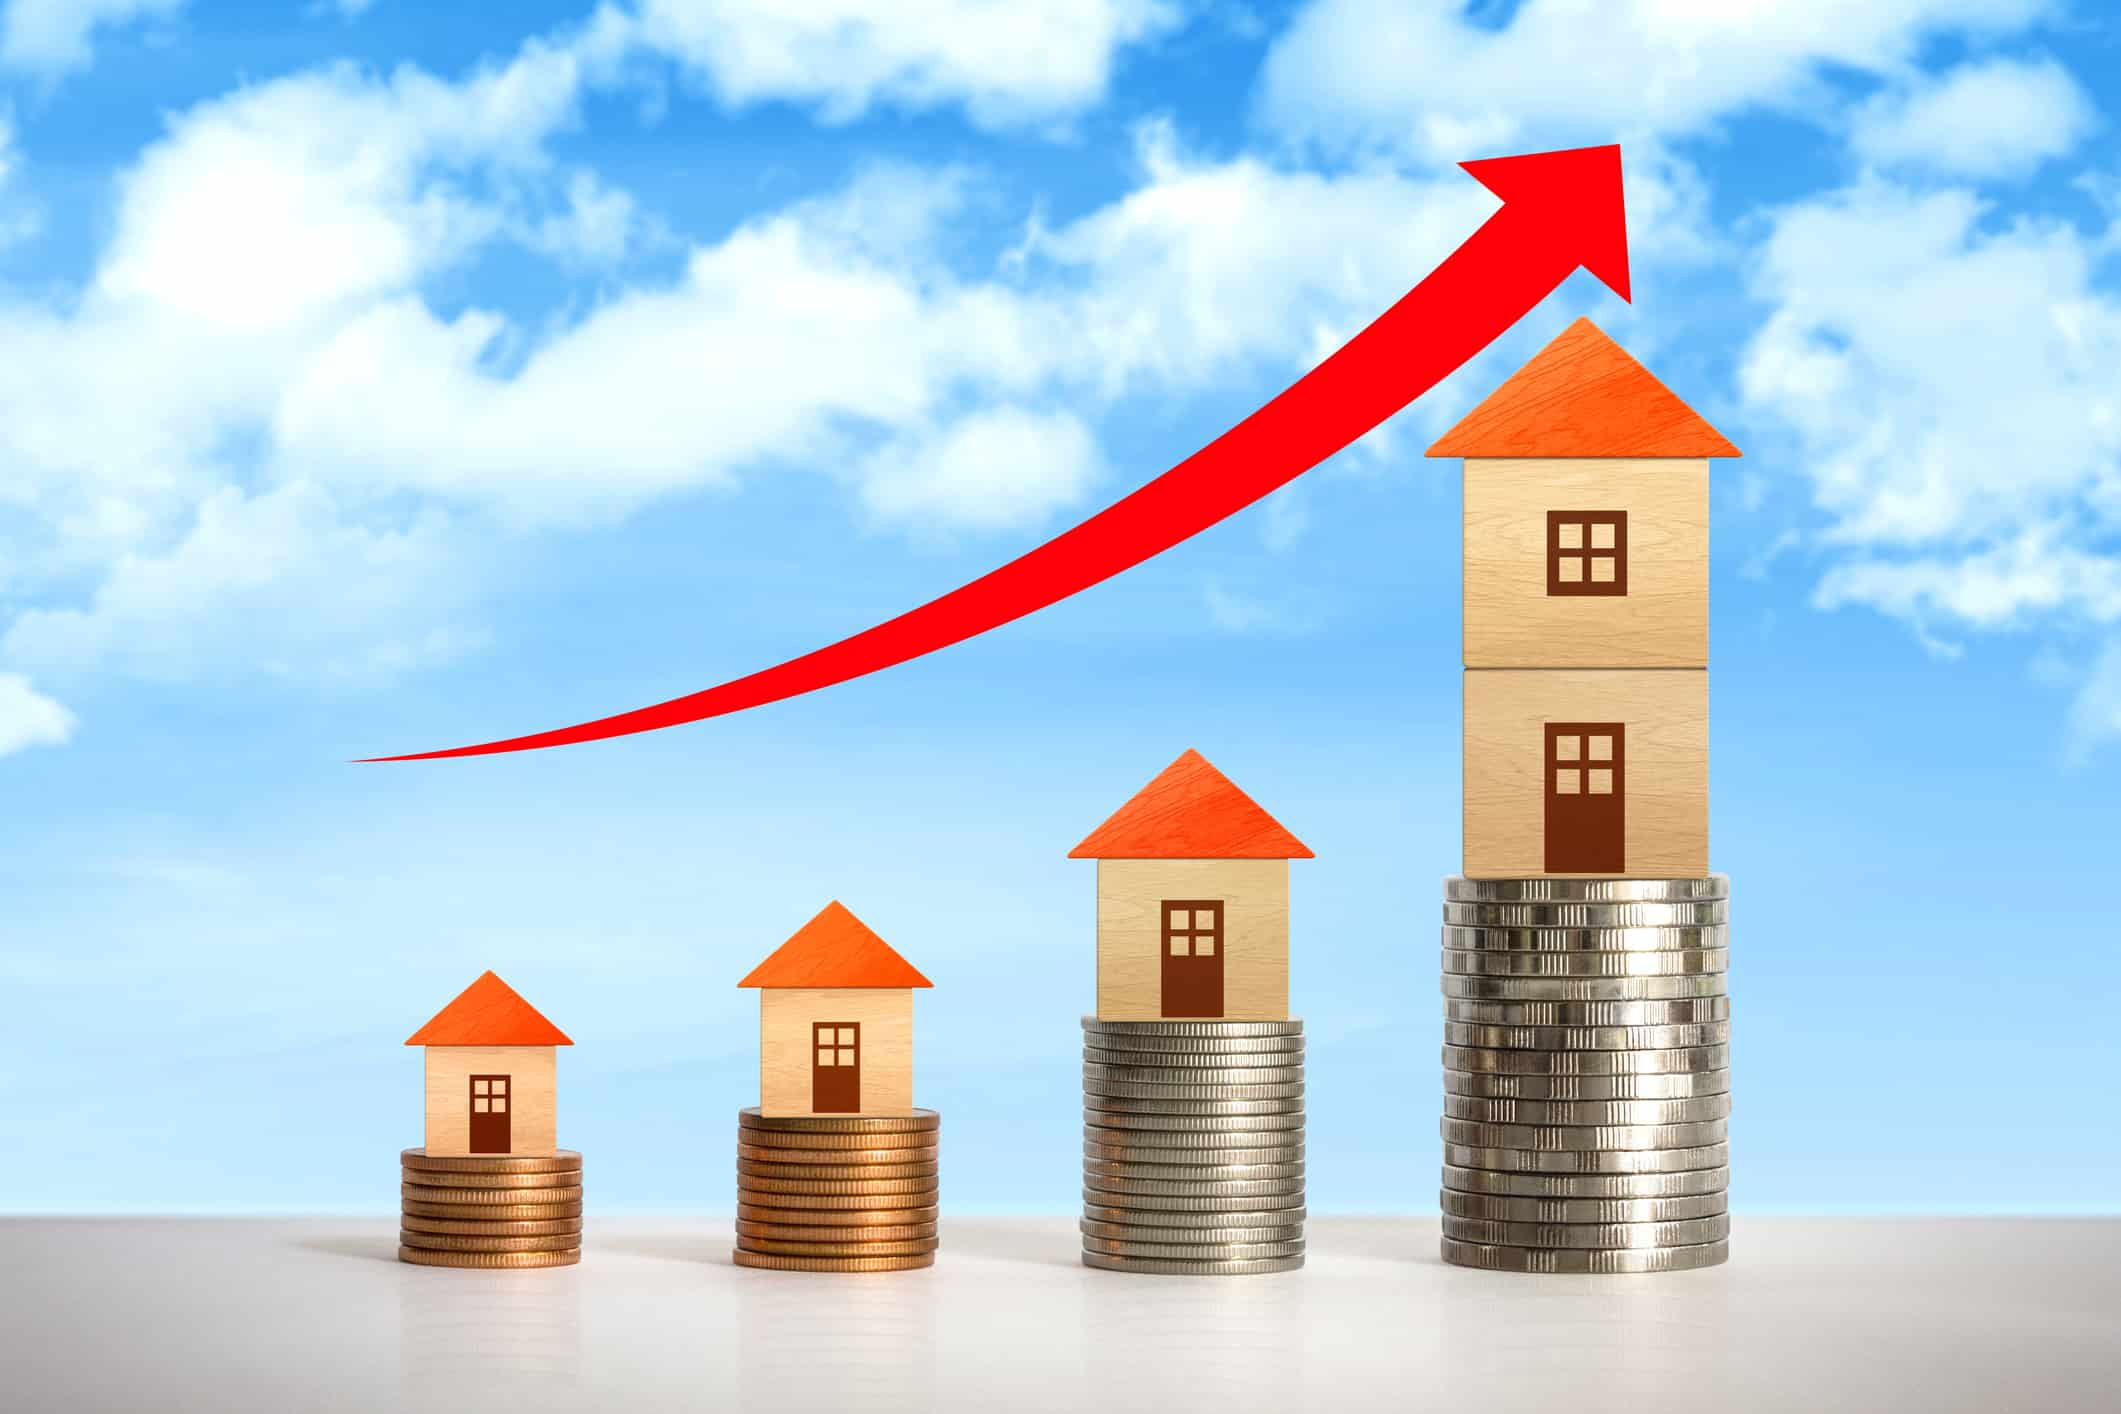 With home prices rising current homeowners Are benefiting. Image of coins stacked ascending with paper homes on top. A depiction of rising home prices.